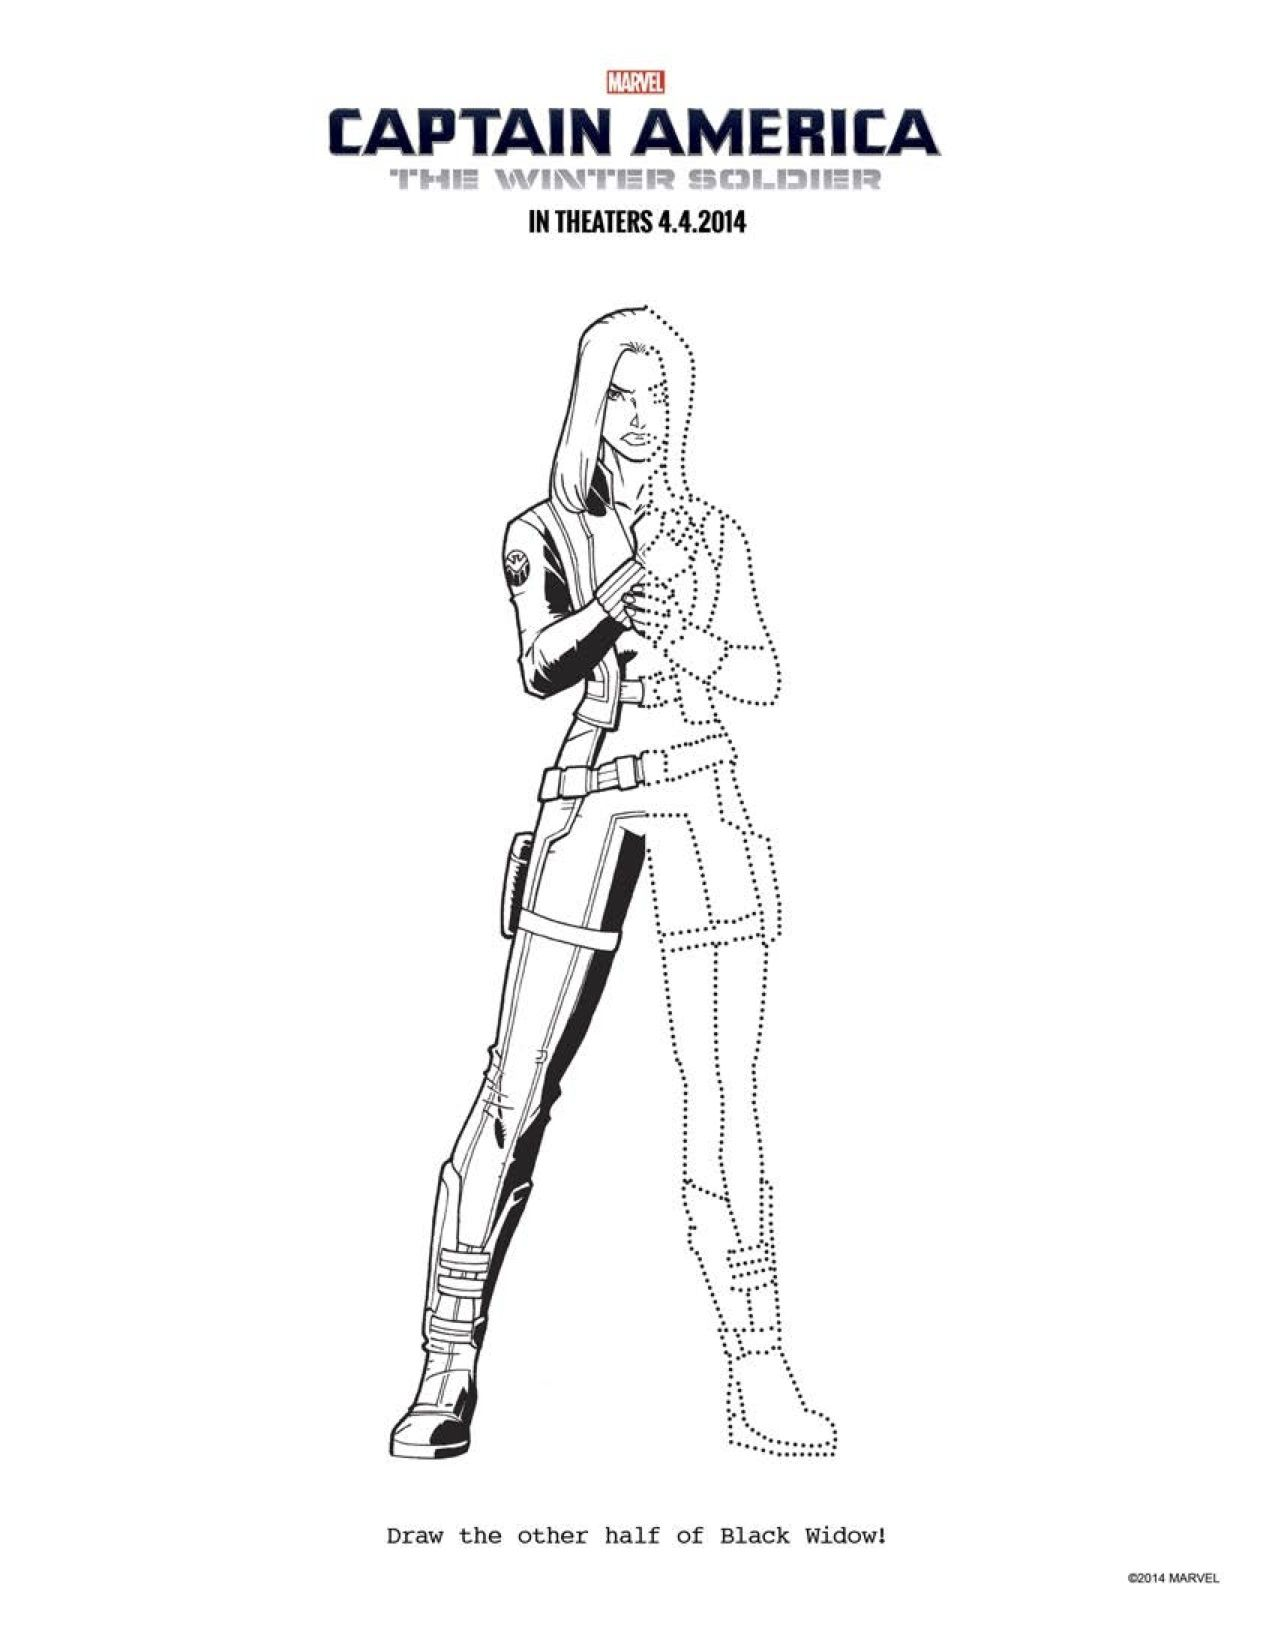 14 CAPTAIN AMERICA THE WINTER SOLDIER Coloring Sheets To Keep Everyone Occupied Until April 4th CaptainAmerica Black Widow